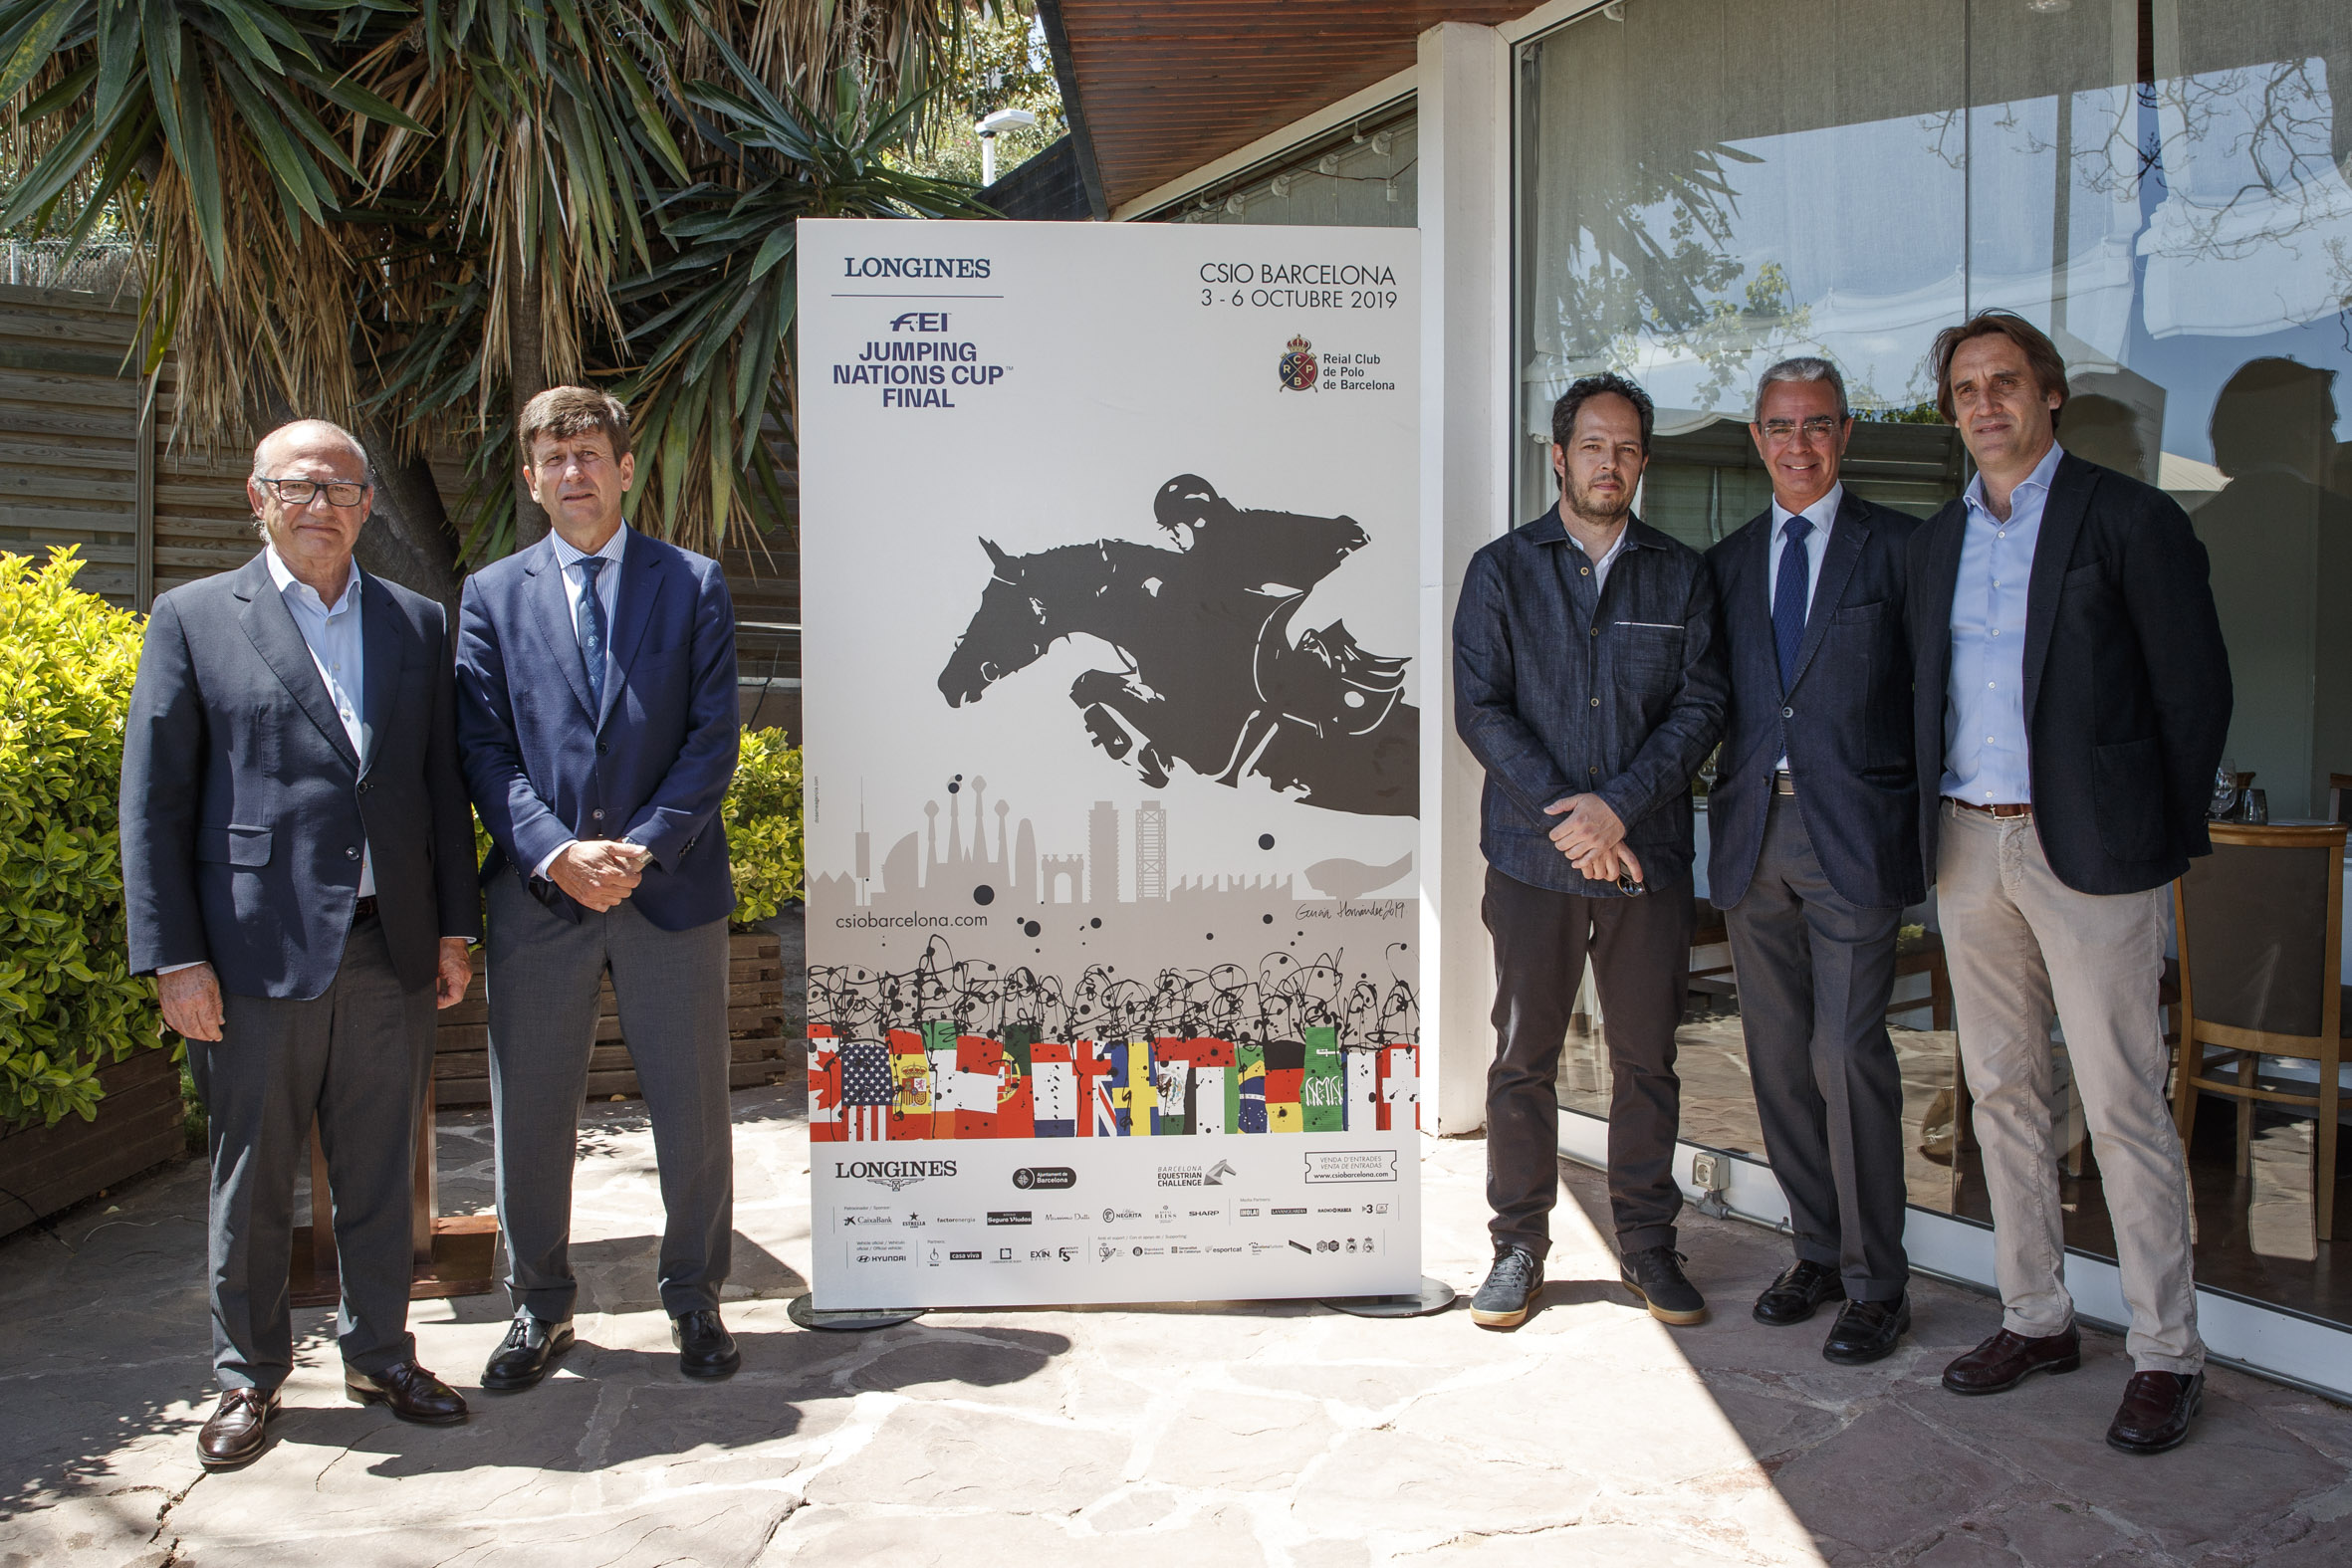 This is the official CSIO Barcelona 2019 poster